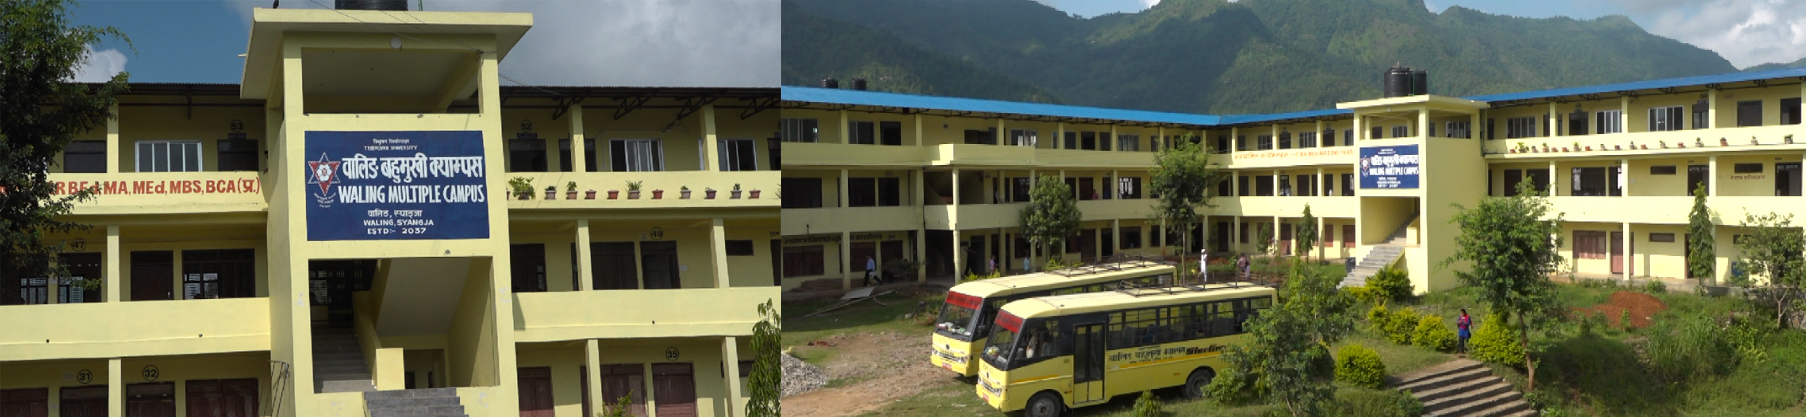 Waling Multiple Campus